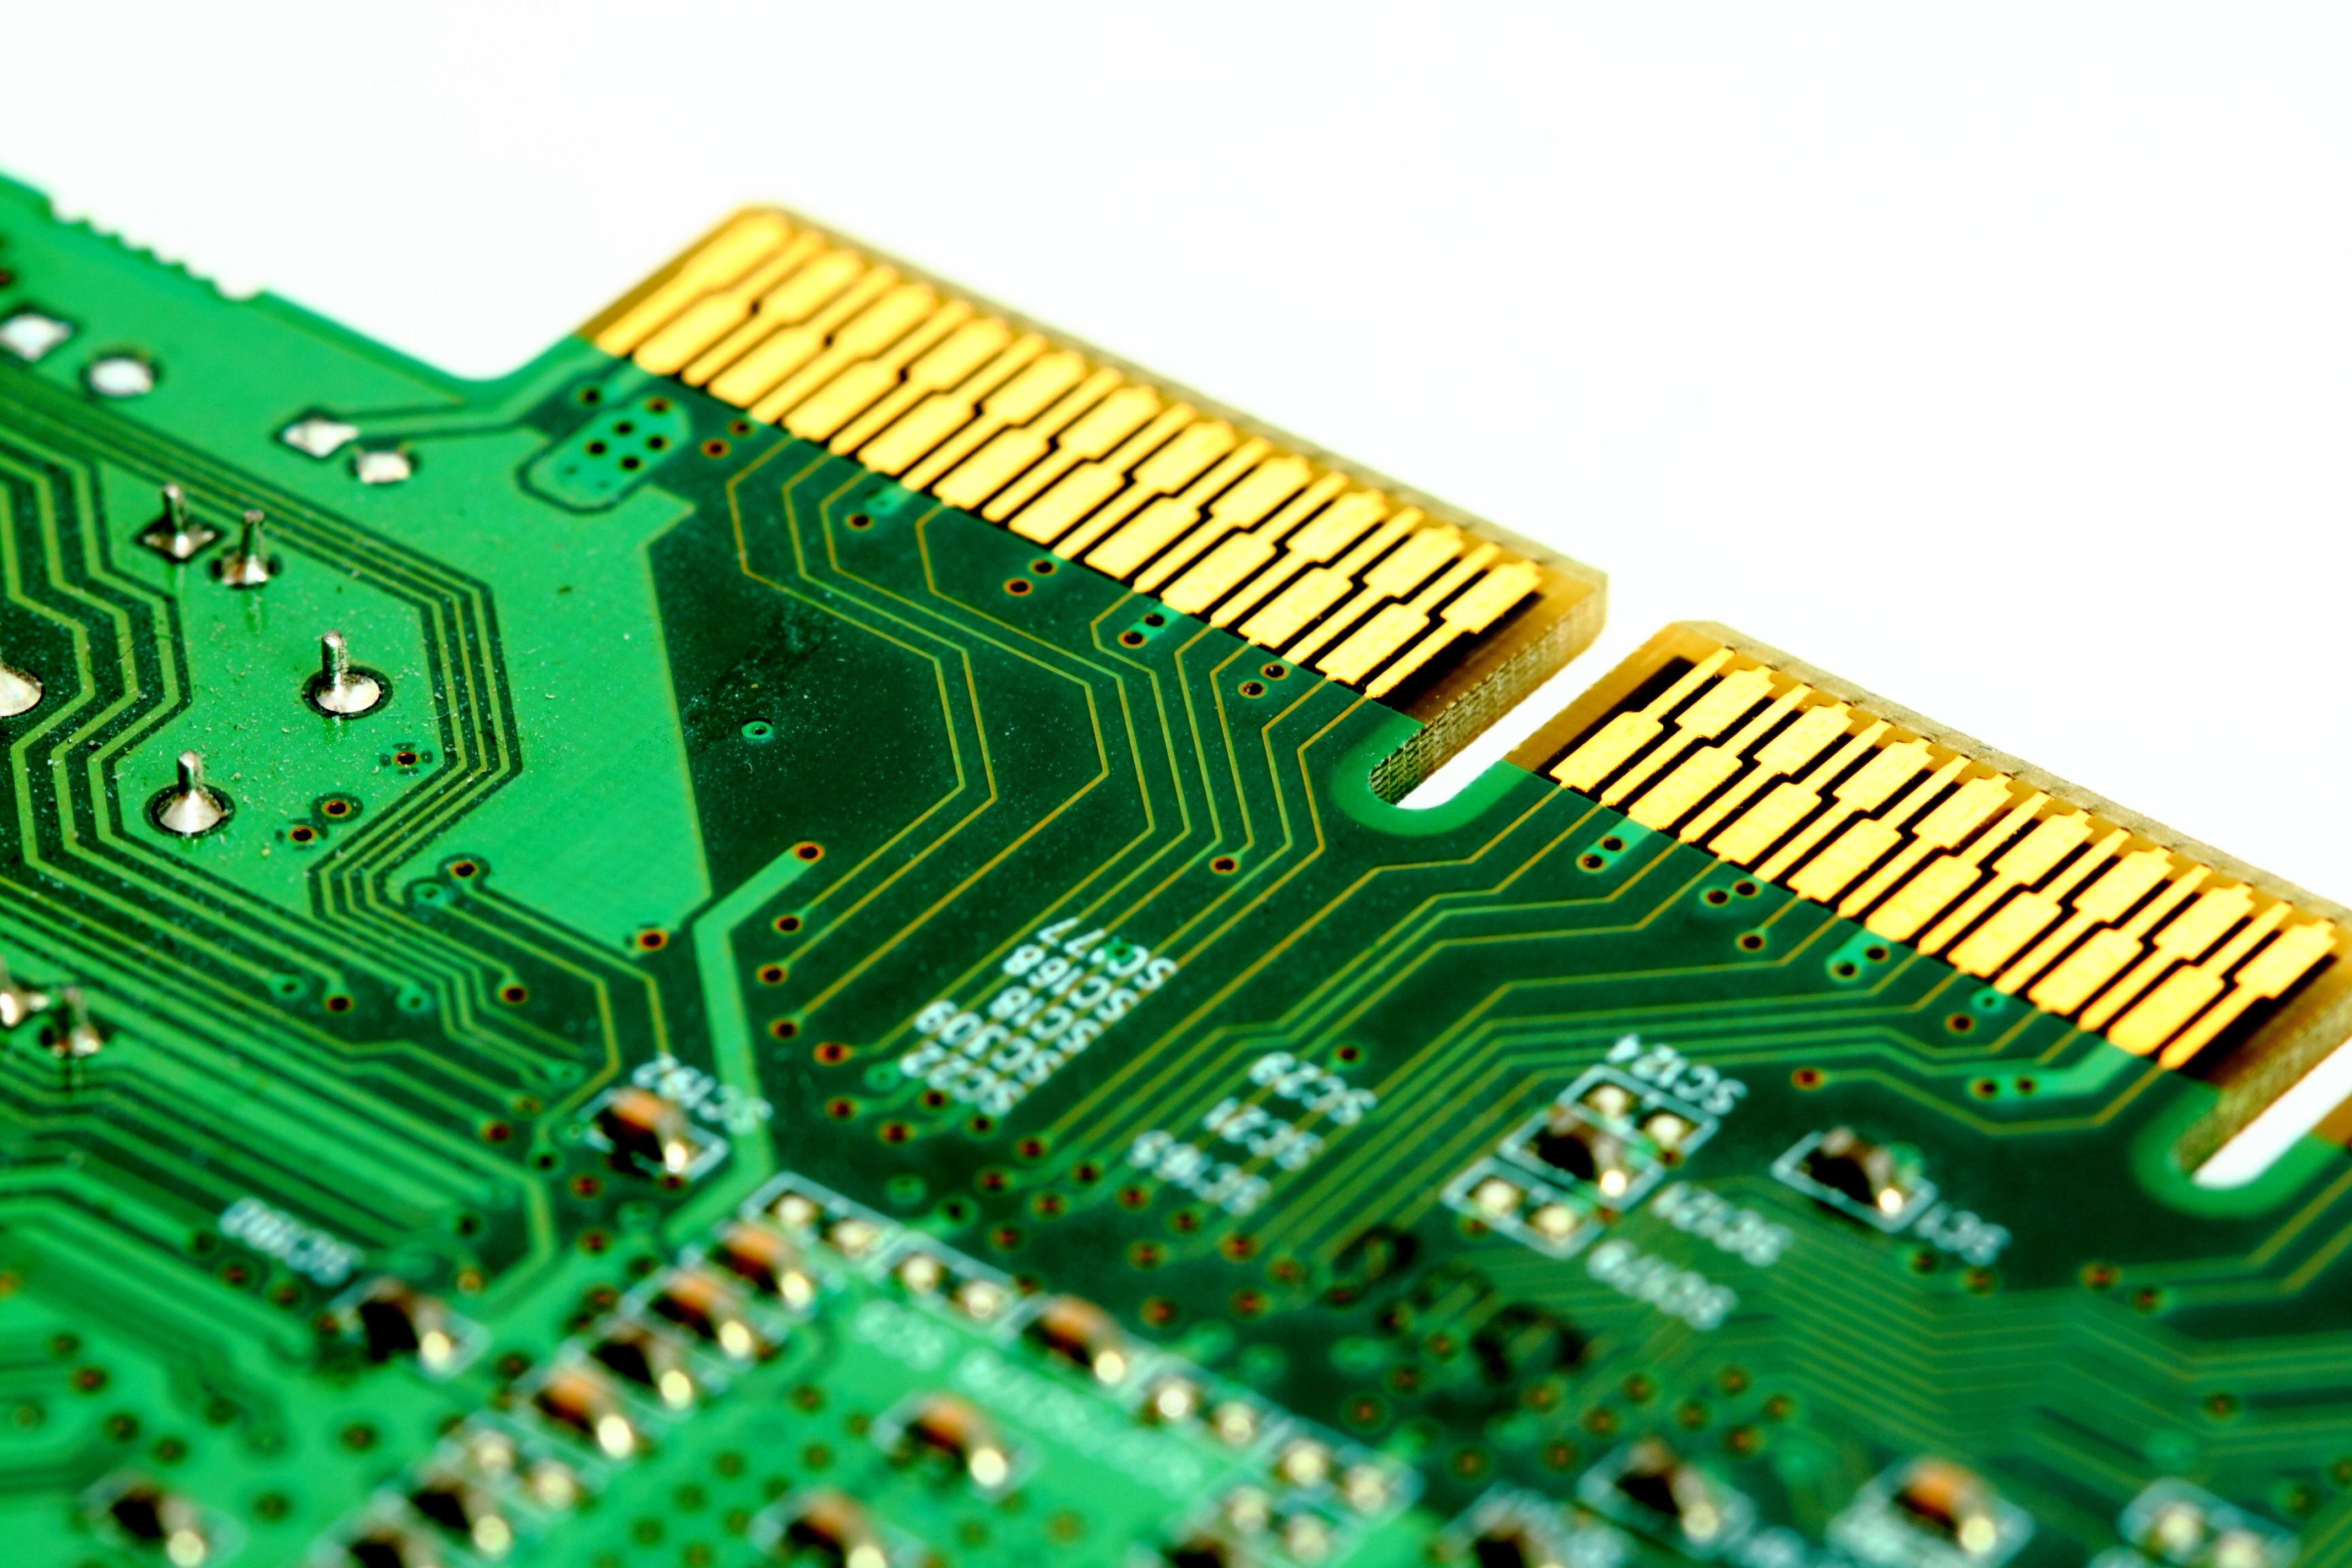 Circuit Board Recycling Low Grade Medium High Boards Recycle Concept Of Electronic Junk